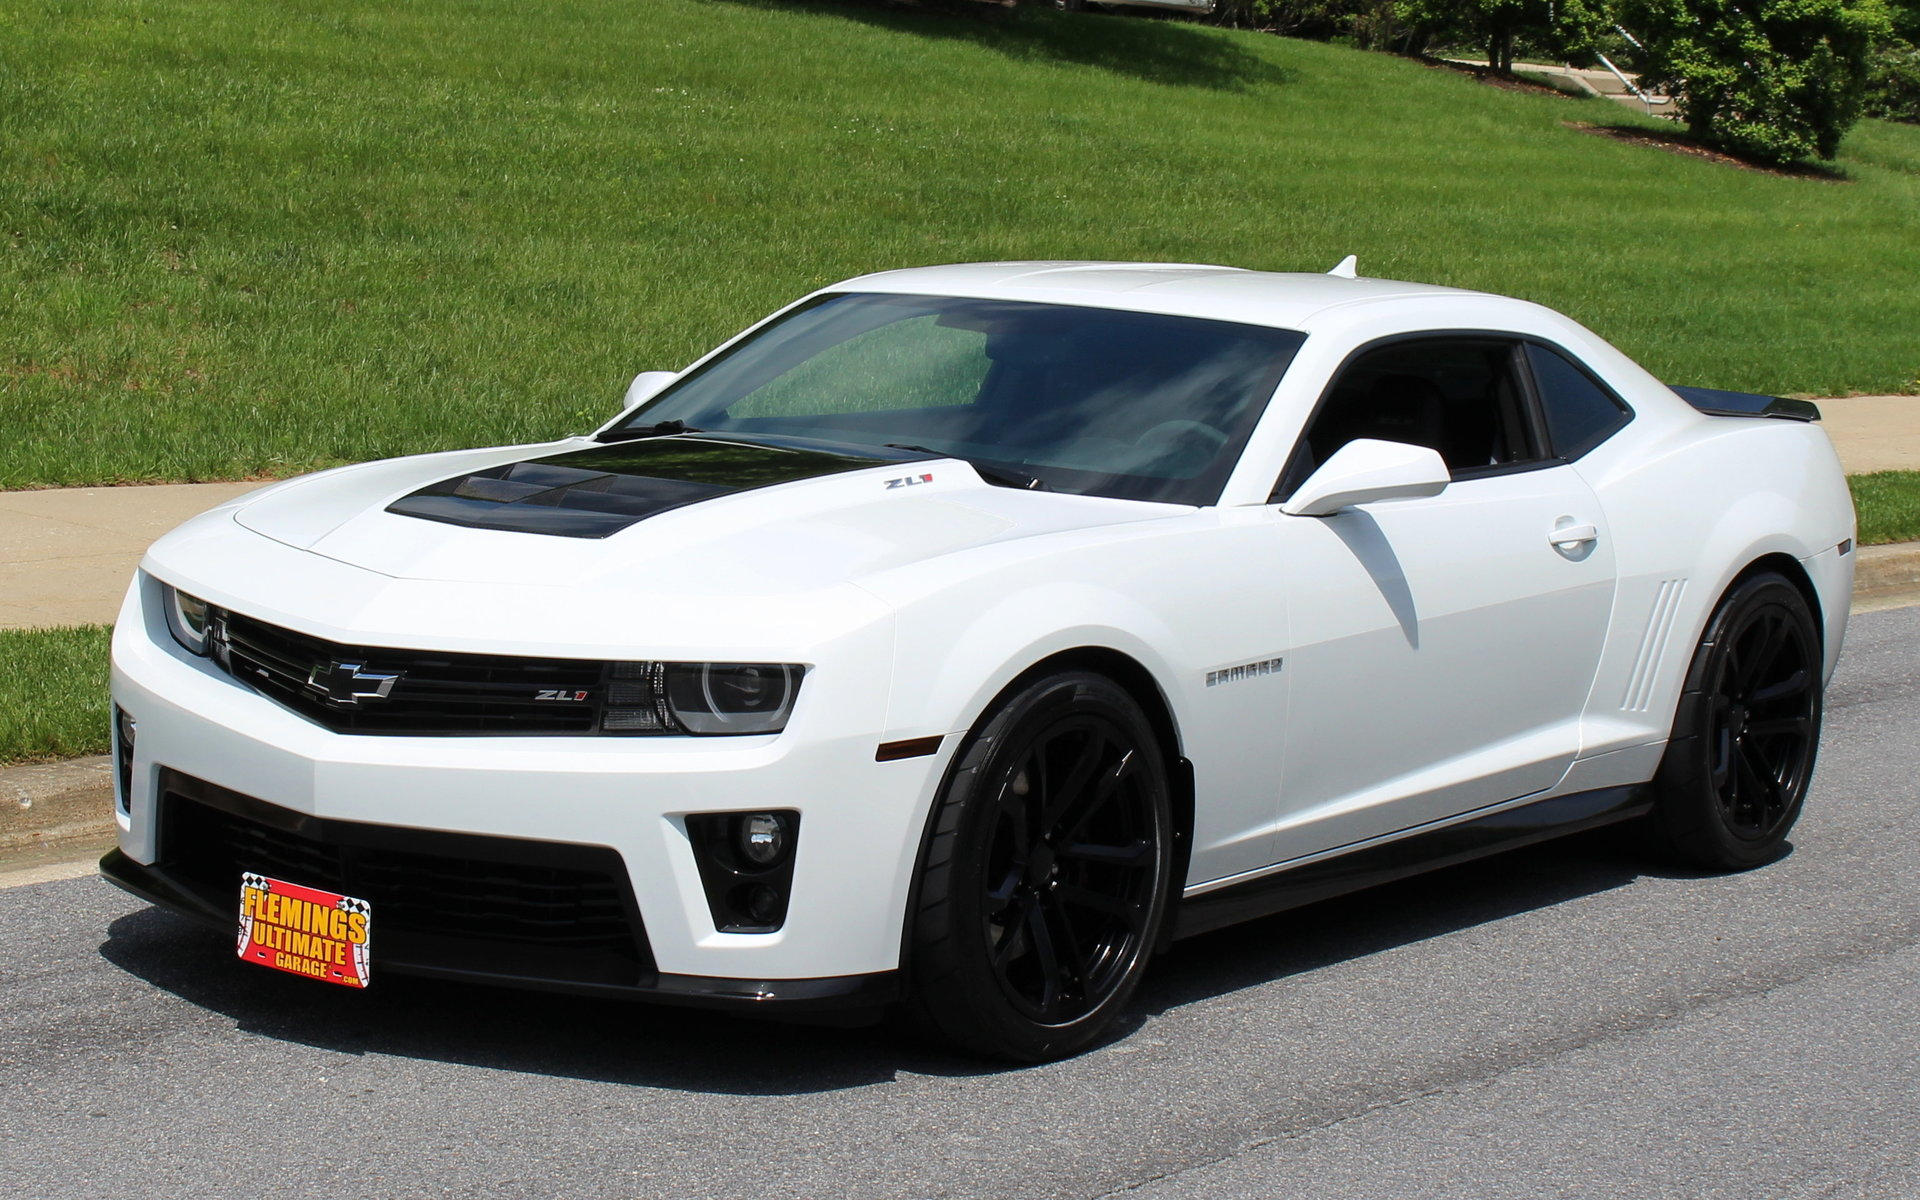 2012 chevrolet camaro zl1 for sale 88642 mcg. Black Bedroom Furniture Sets. Home Design Ideas